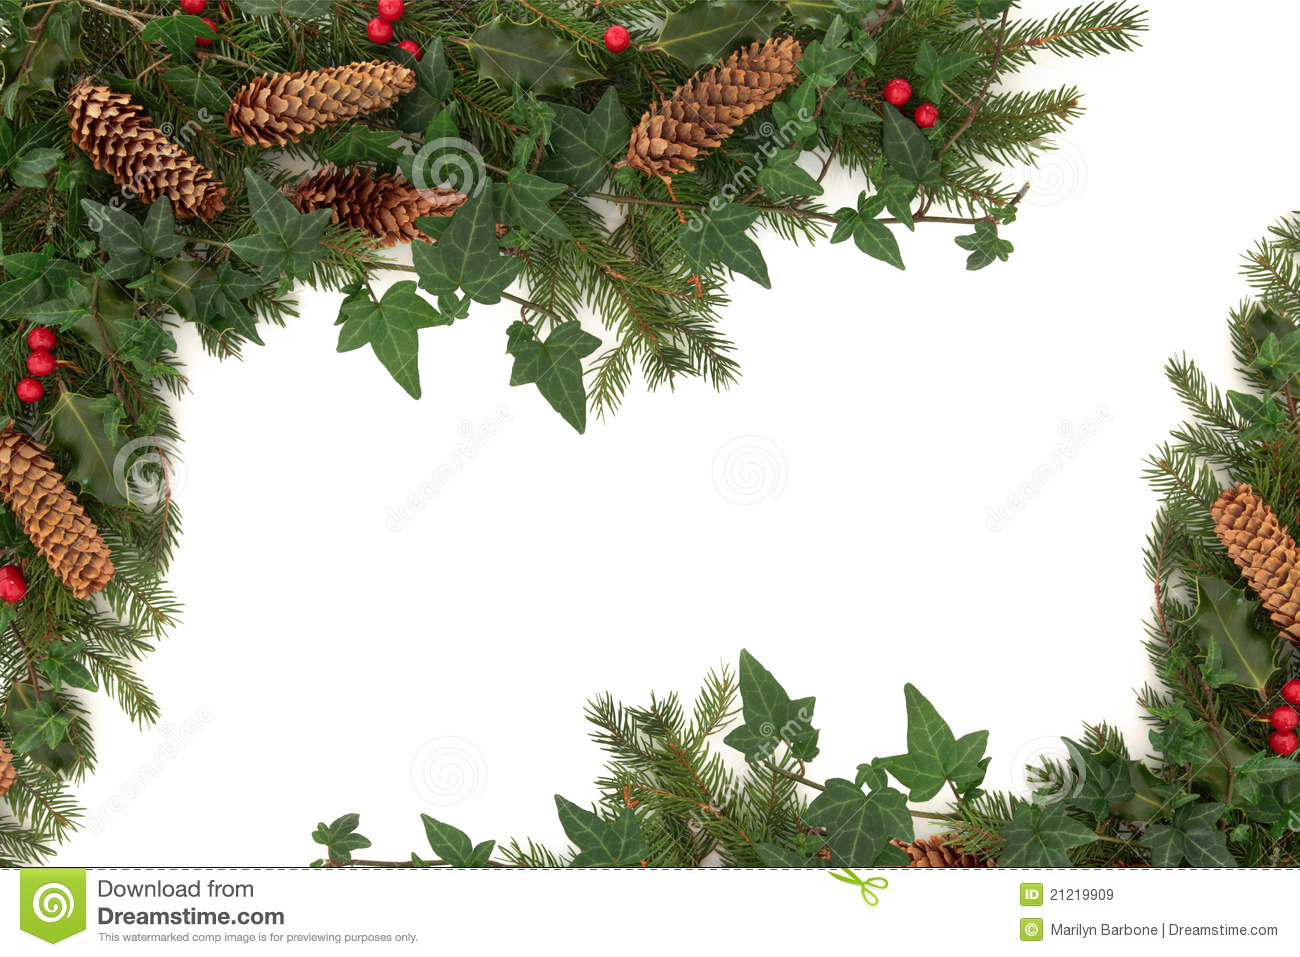 Free Pine Garland Cliparts, Download Free Clip Art, Free Clip Art on Clipart  Library